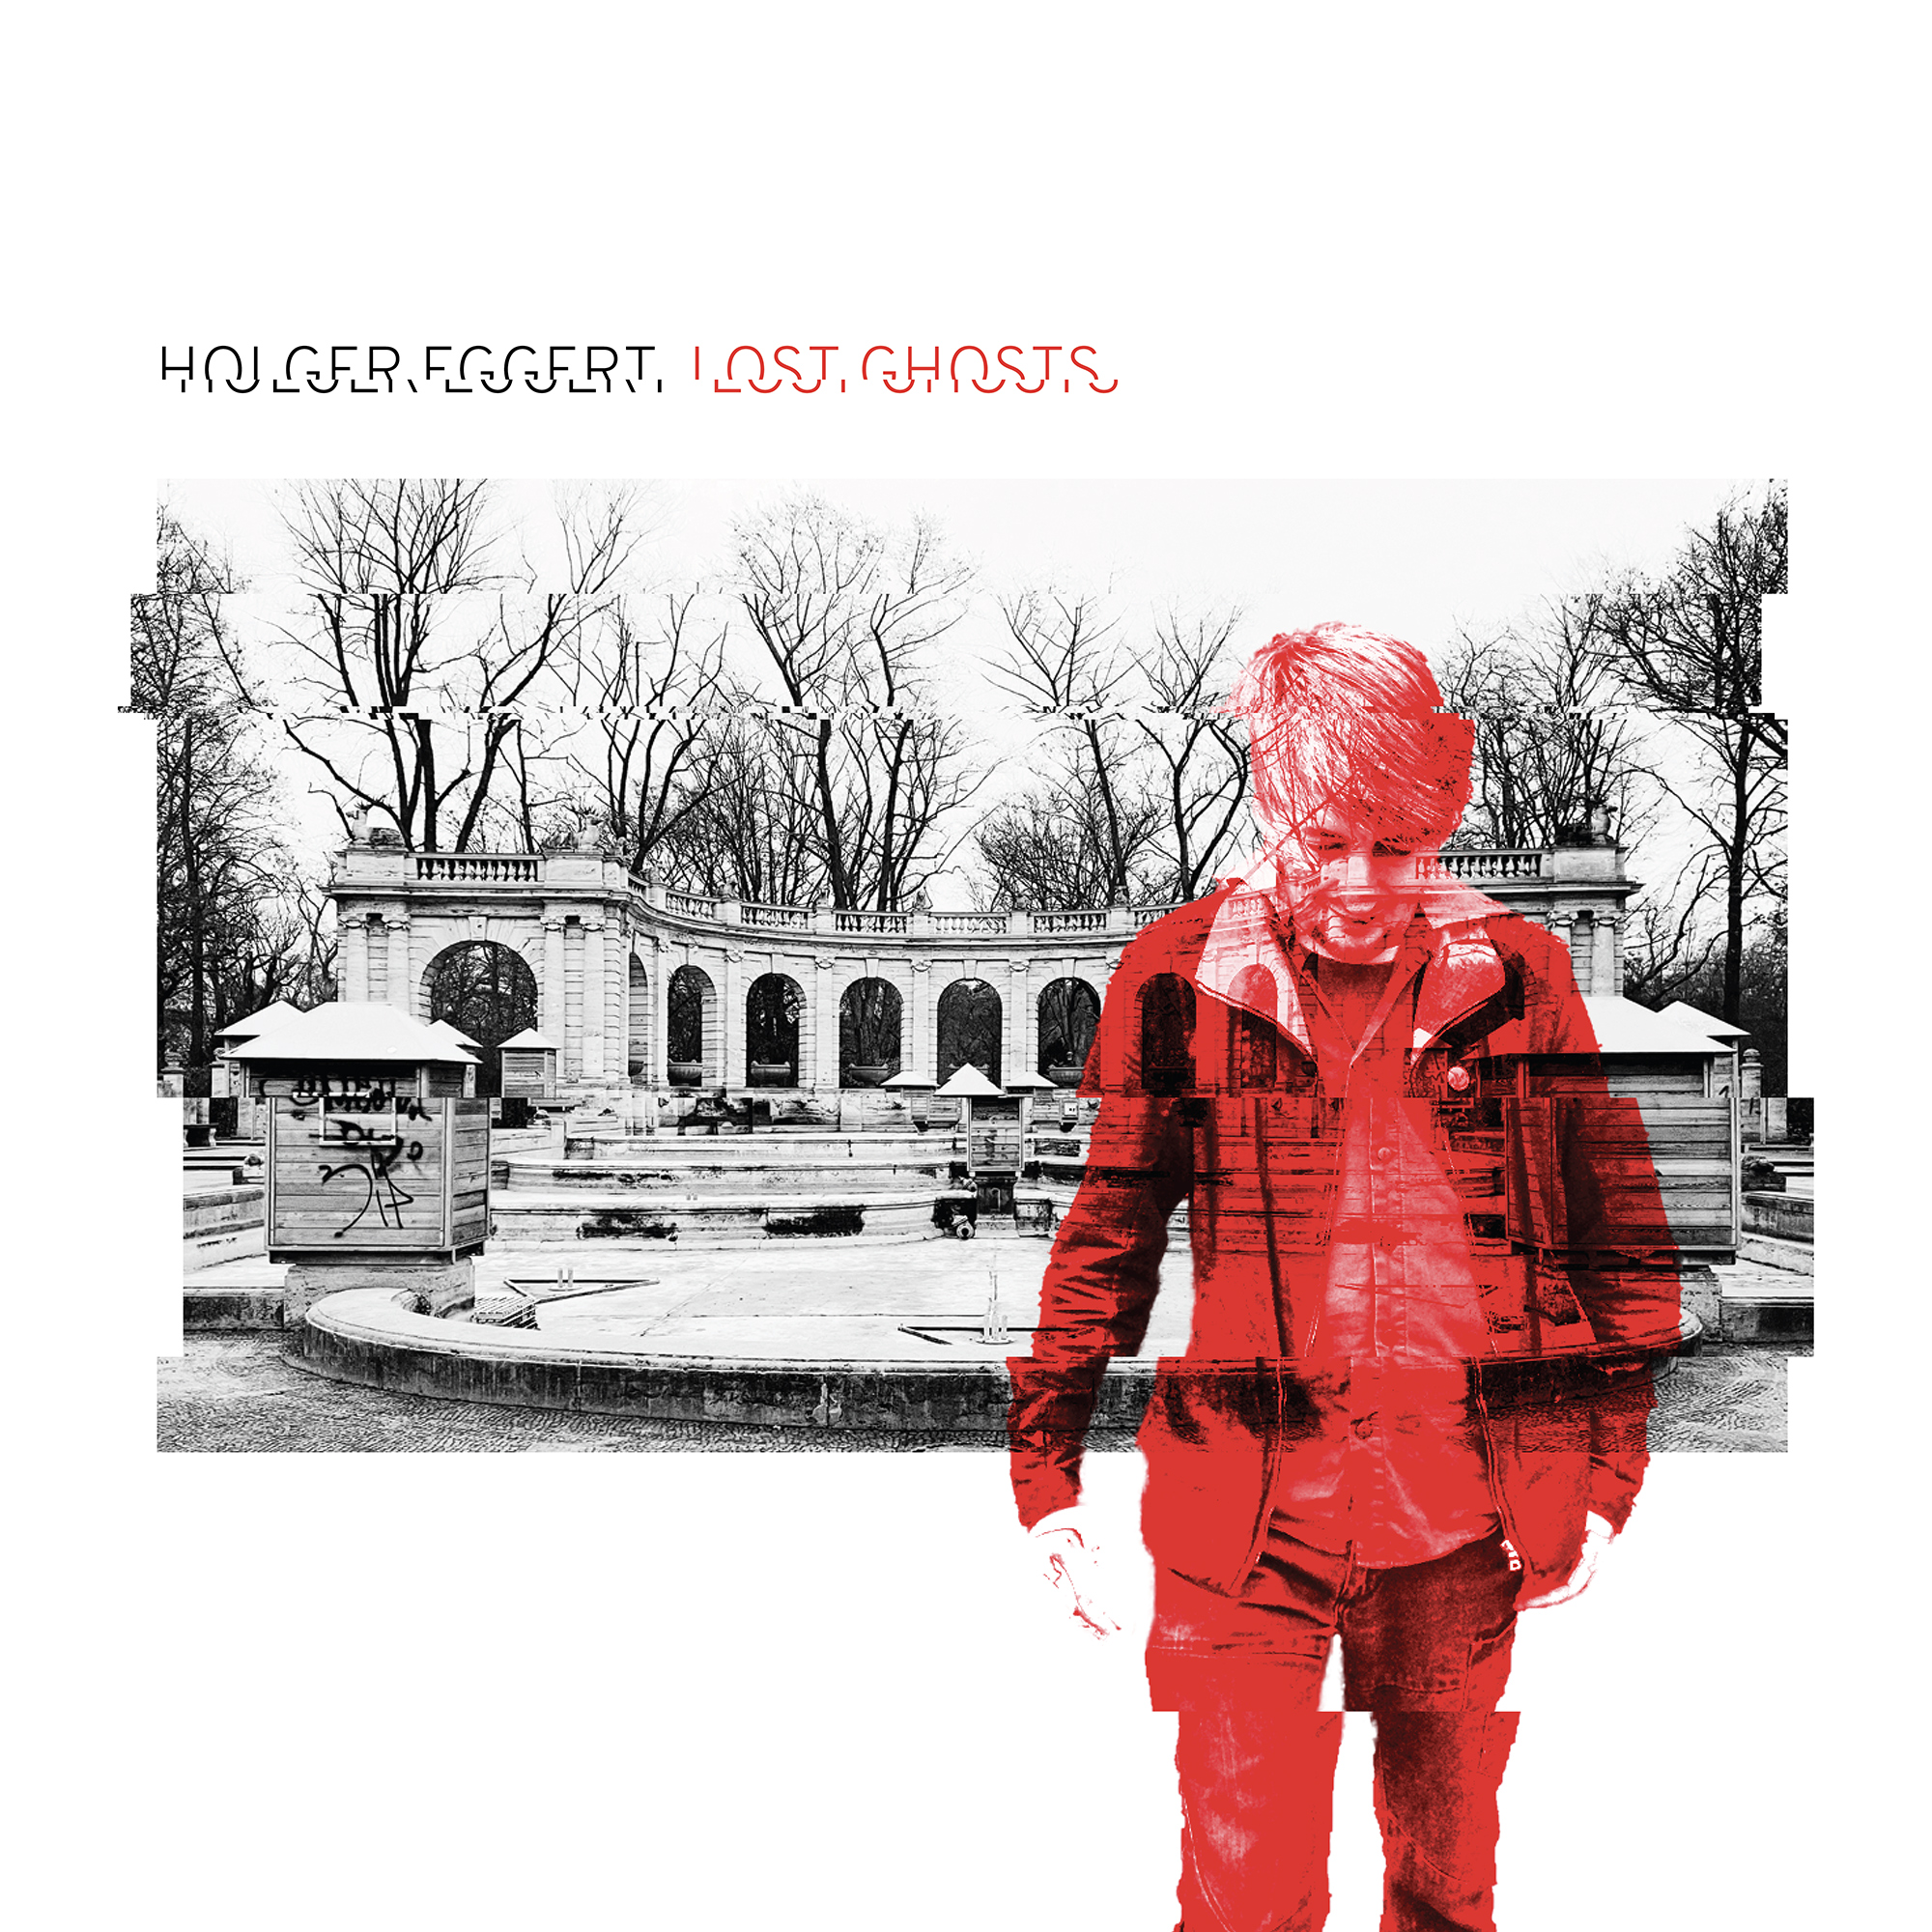 Lost Ghosts (front cover)